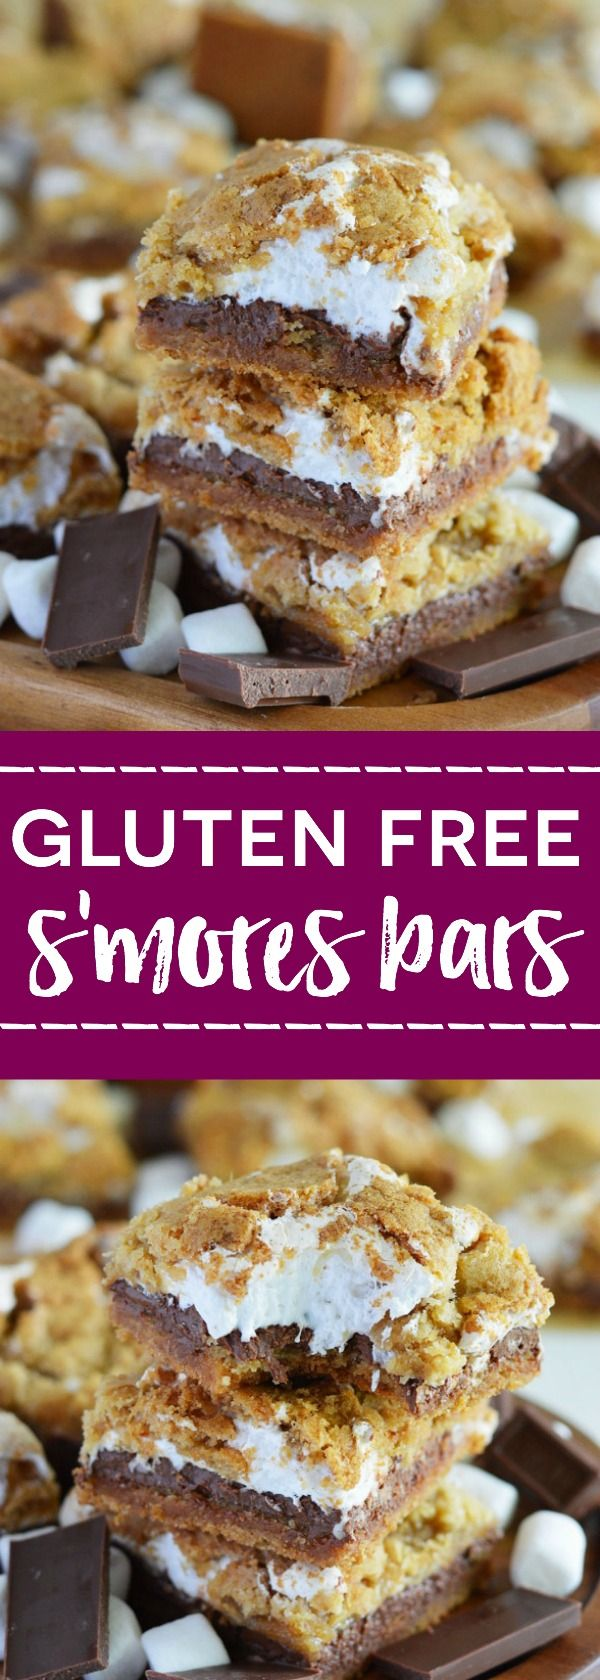 Gluten Free S'mores Bars (with dairy free option) from What The Fork Food Blog | whattheforkfoodblog.com